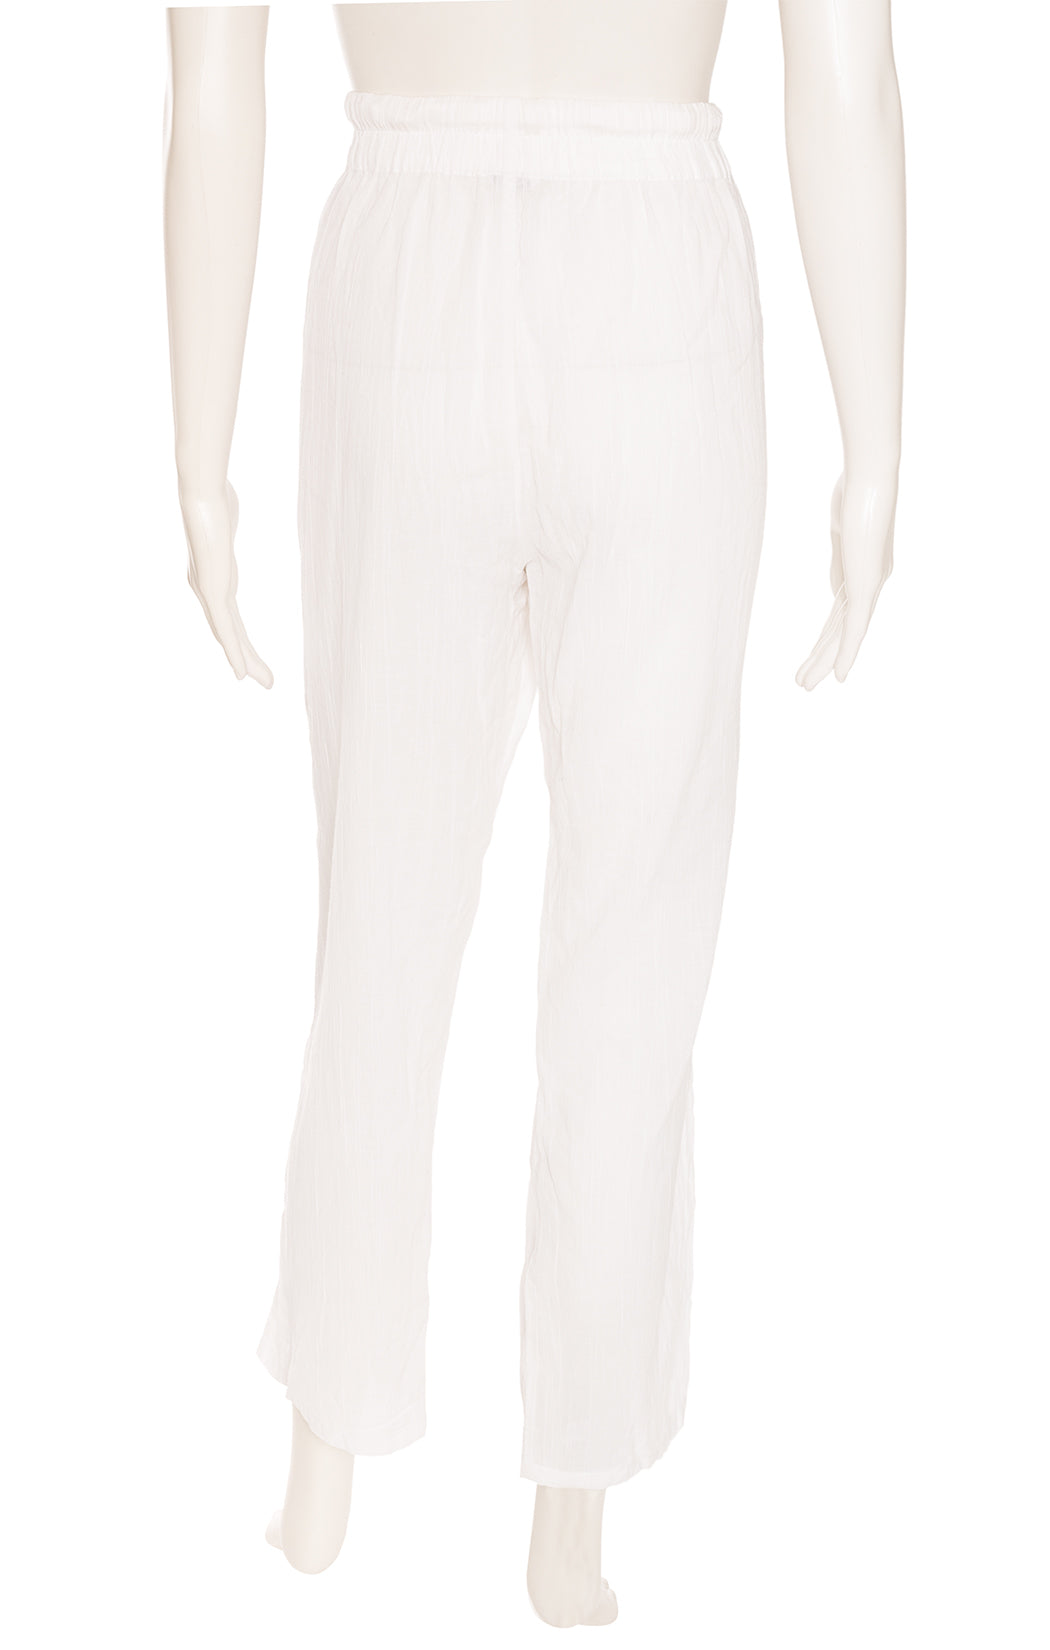 JAMES PERSE with tags  Pants Size: 3: comparable to Medium